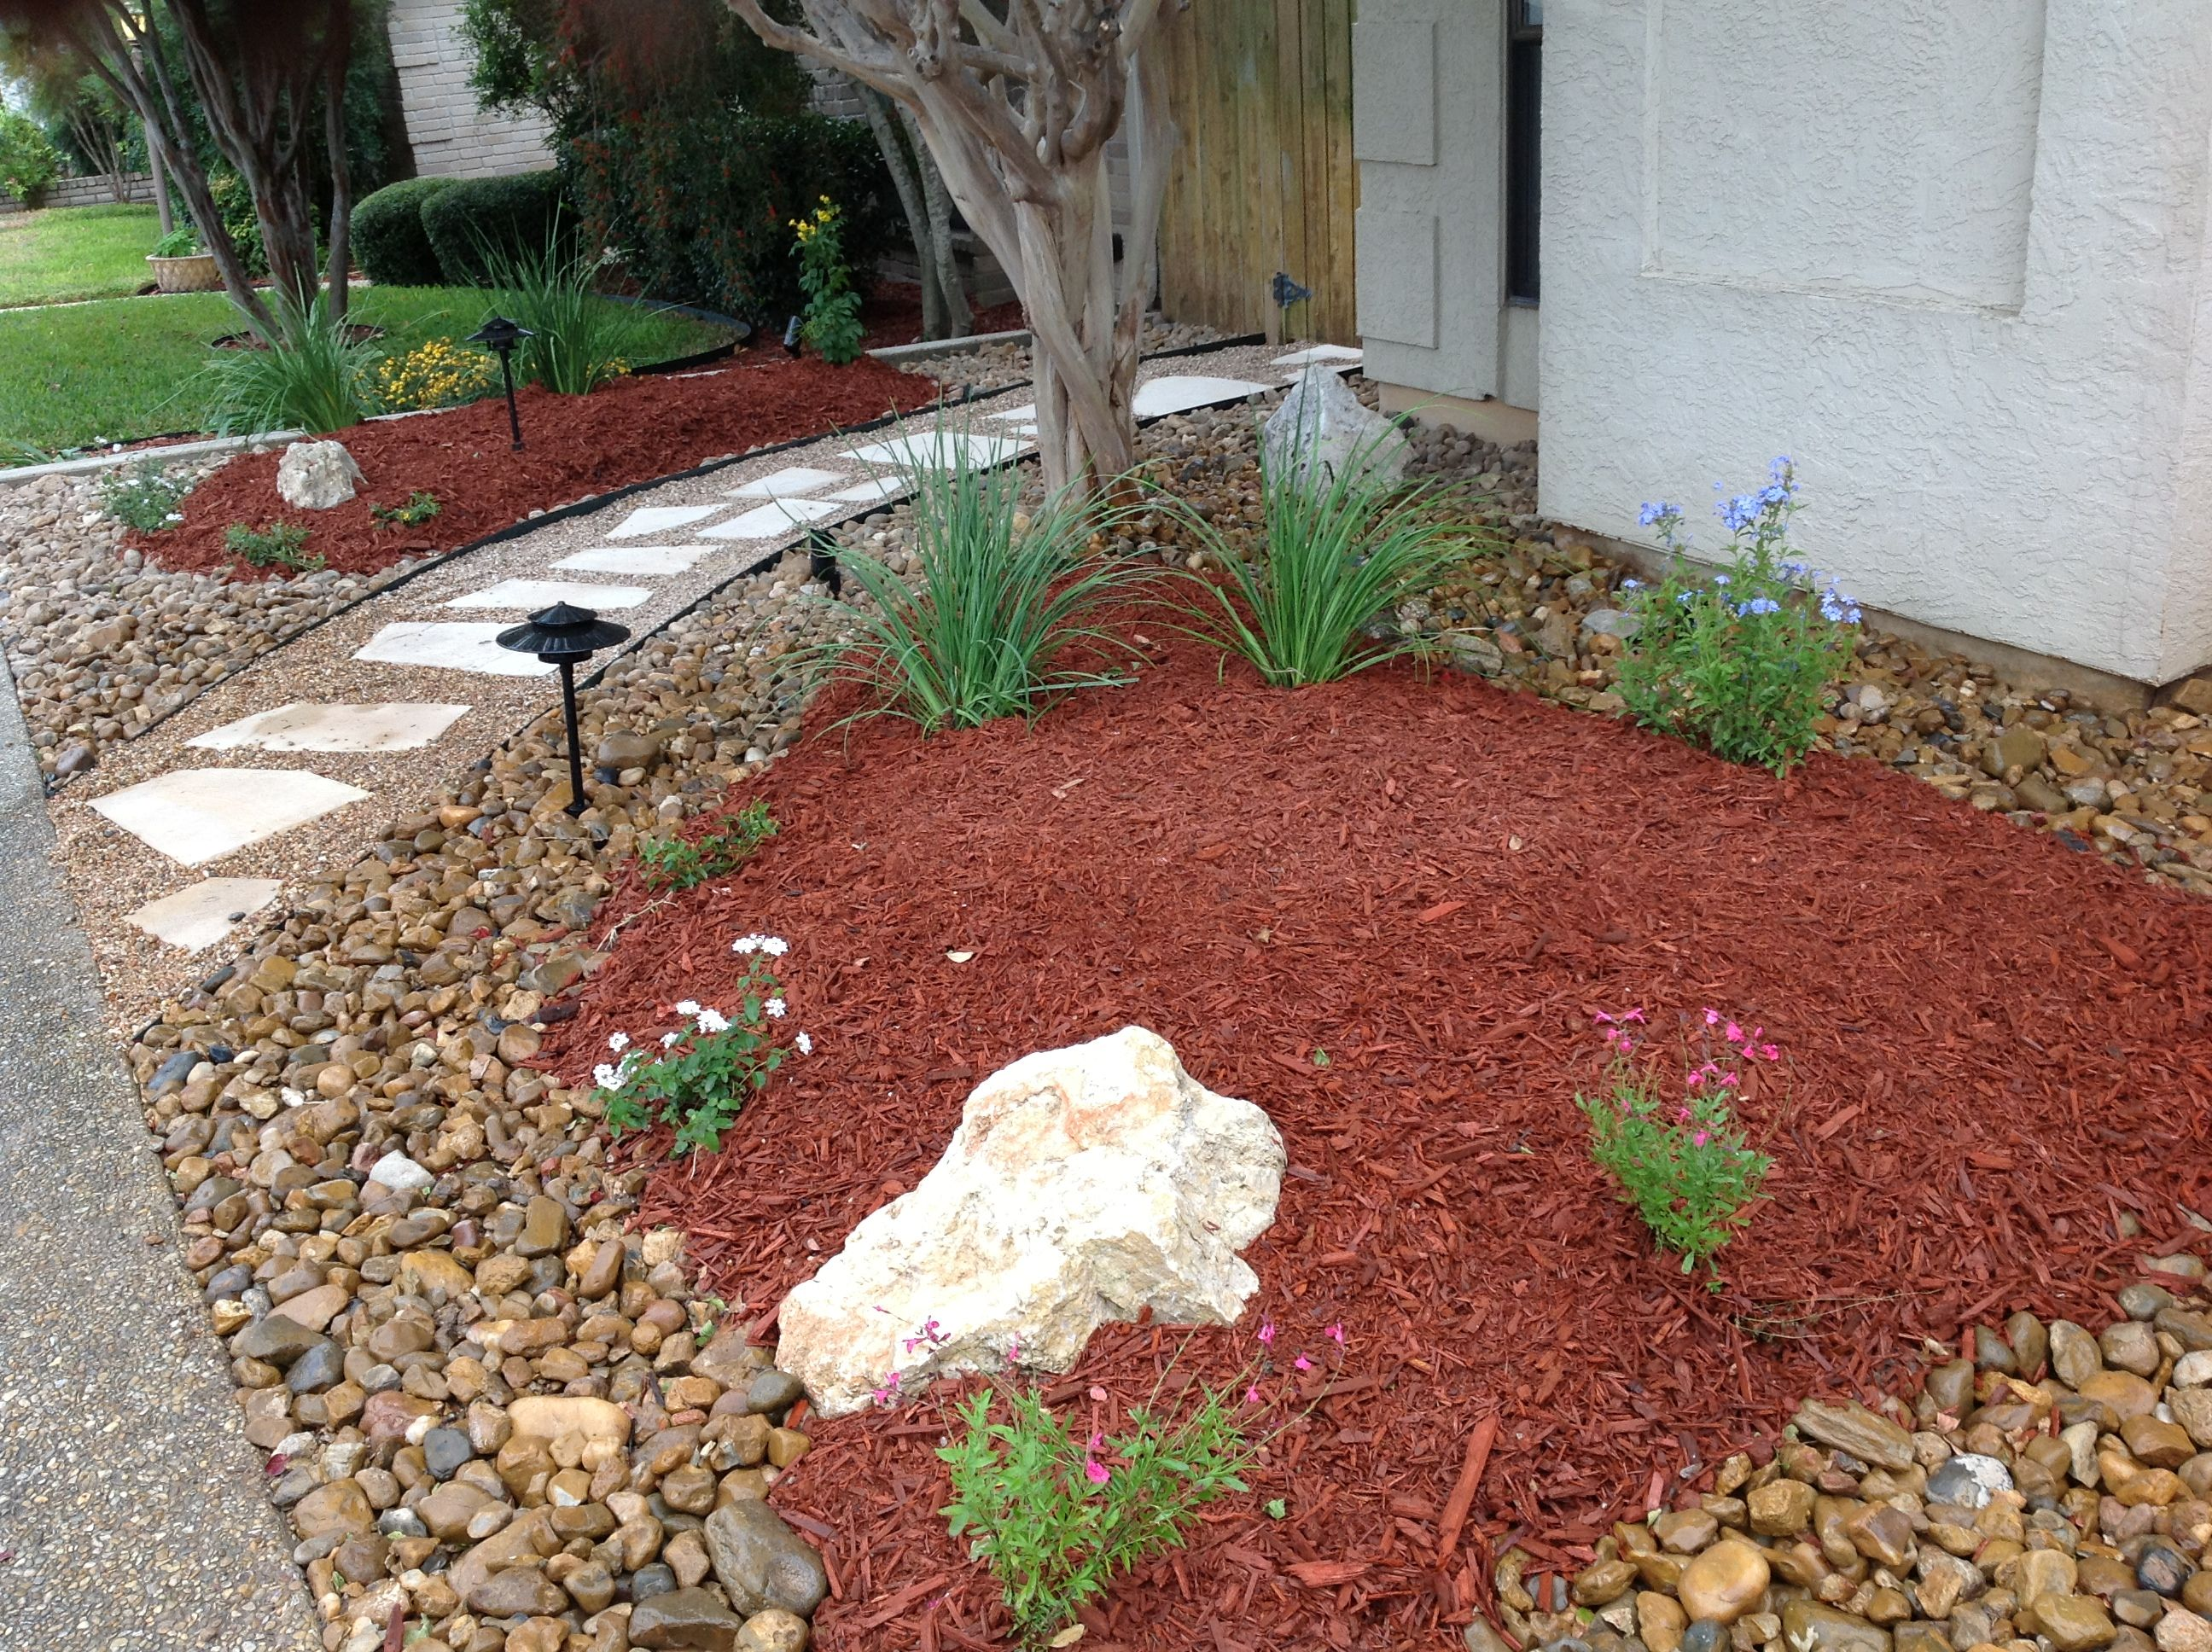 Rocks Against Paths Bark Mulch In Planting Area Stepping